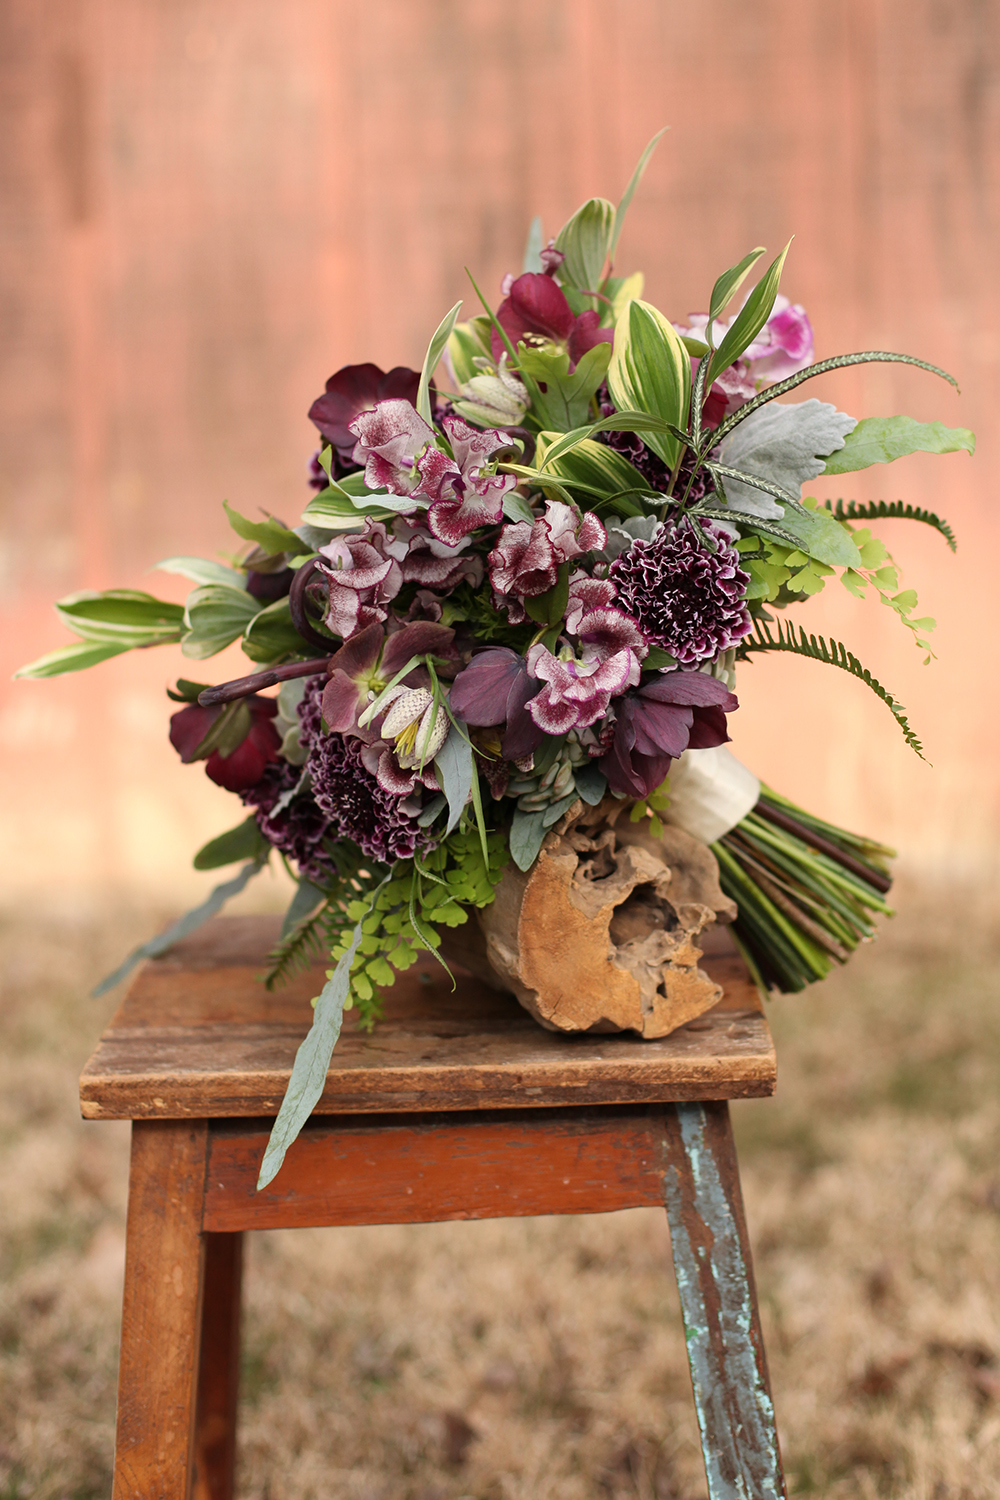 Woodland inspired bridal bouquet by Floral Verde LLC in Cincinnati, Ohio, with uhule fern curls, Pretty Purple Japanese scabiosa, Wiltshire Ripple sweet pea, Fritillaria meleagris, Echeveria Lola, Echeveria Painted Lady, dusty miller, Blue Star fern, Haworthia fasciata, Silver Lace fern, green ranunculus, Kimberly Queen fern, variegated Polygonatum odoratum variety pluriflorum and Maidenhair fern.